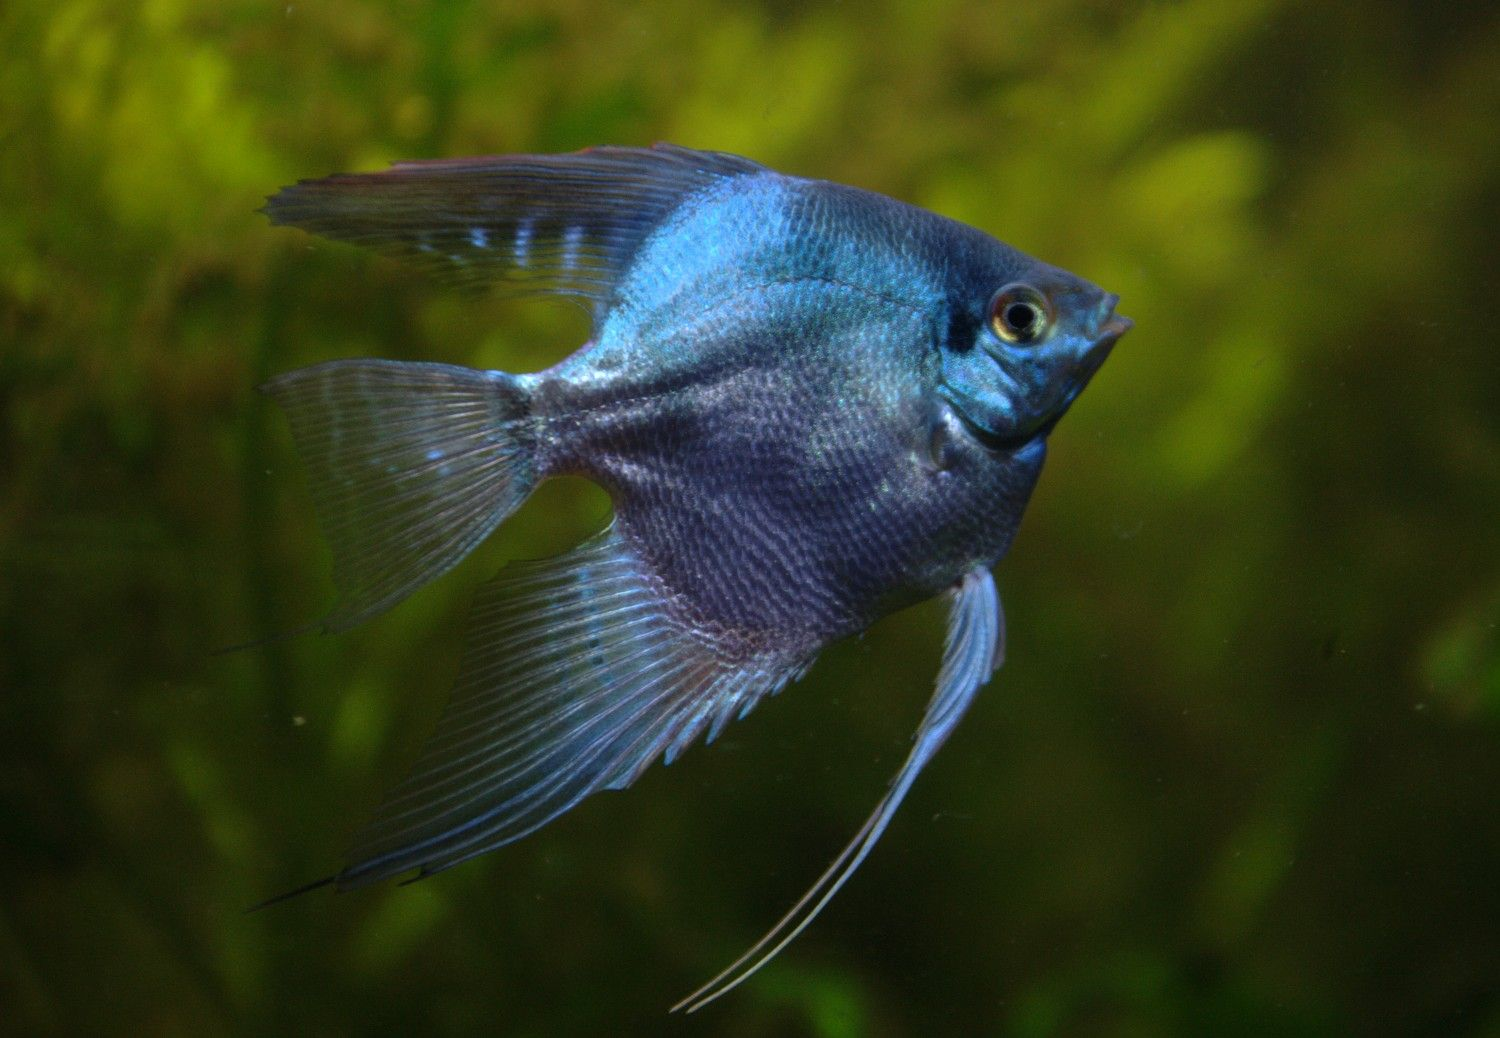 Freshwater aquarium fish angelfish - Angel Fish Platinum Blue